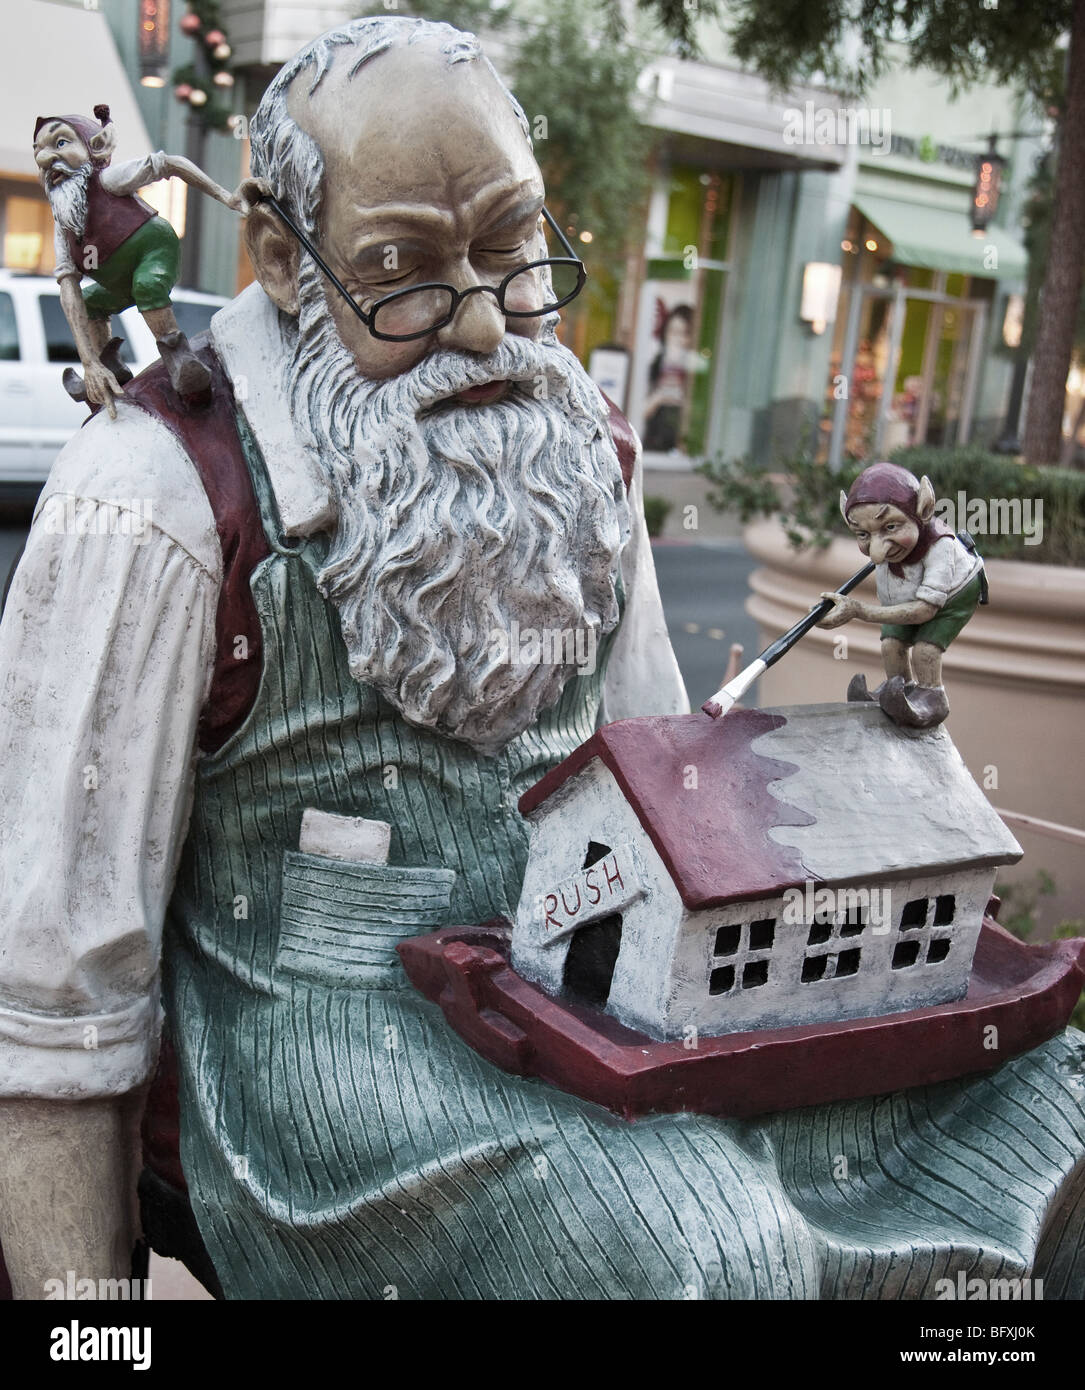 Santa Claus life size statue. - Stock Image